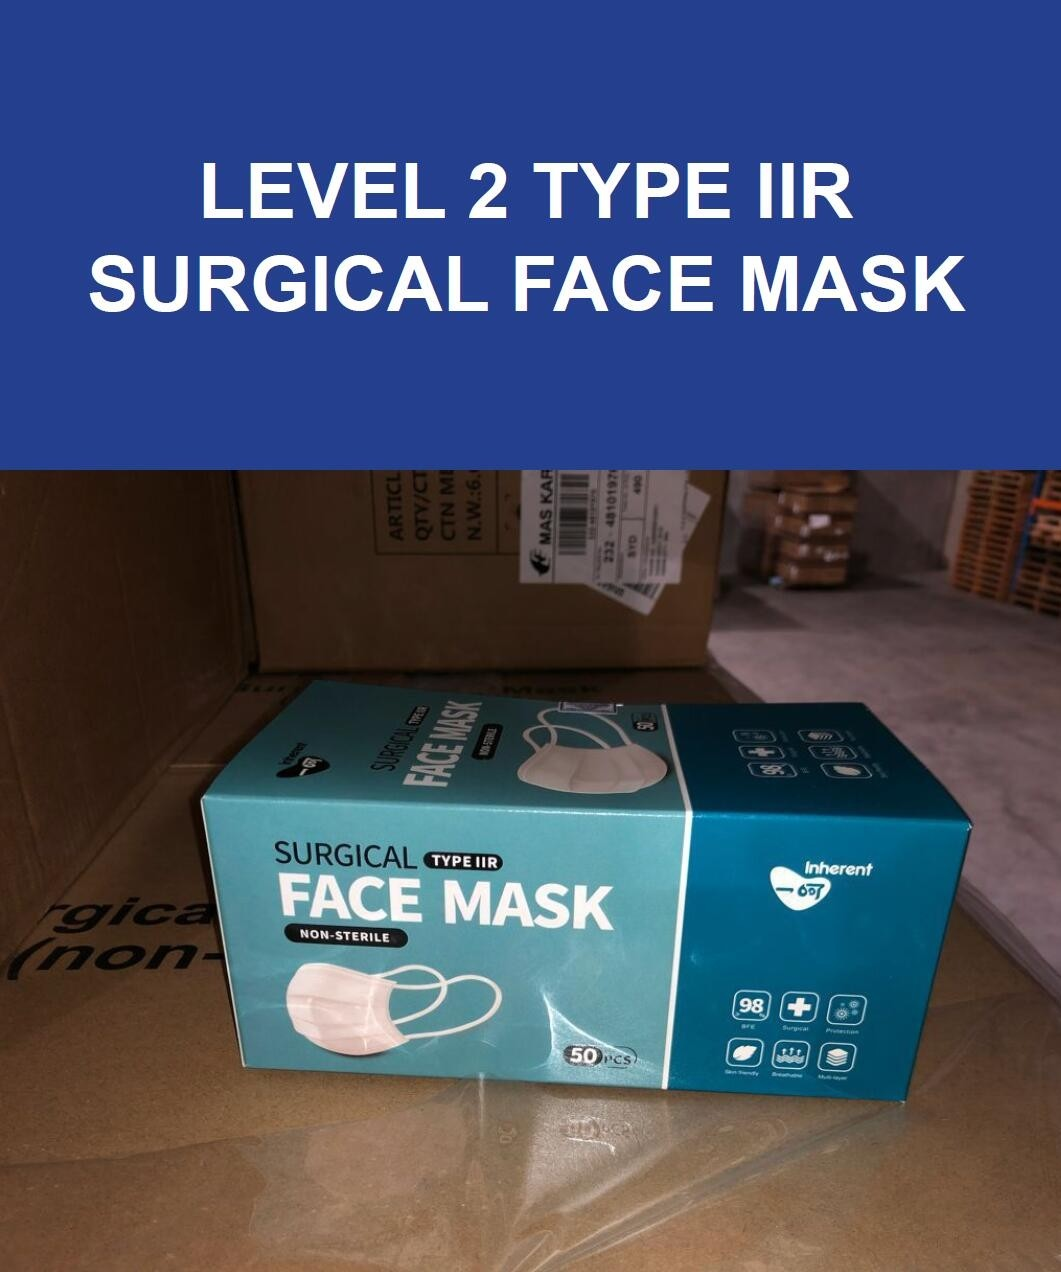 EEXI Level 2 TYPE IIR Disposable Medical Surgical Face Mask - Surgical Mask Medical Face Mask, BFE>98% (CE Certified, TGA  ARTG Listed)